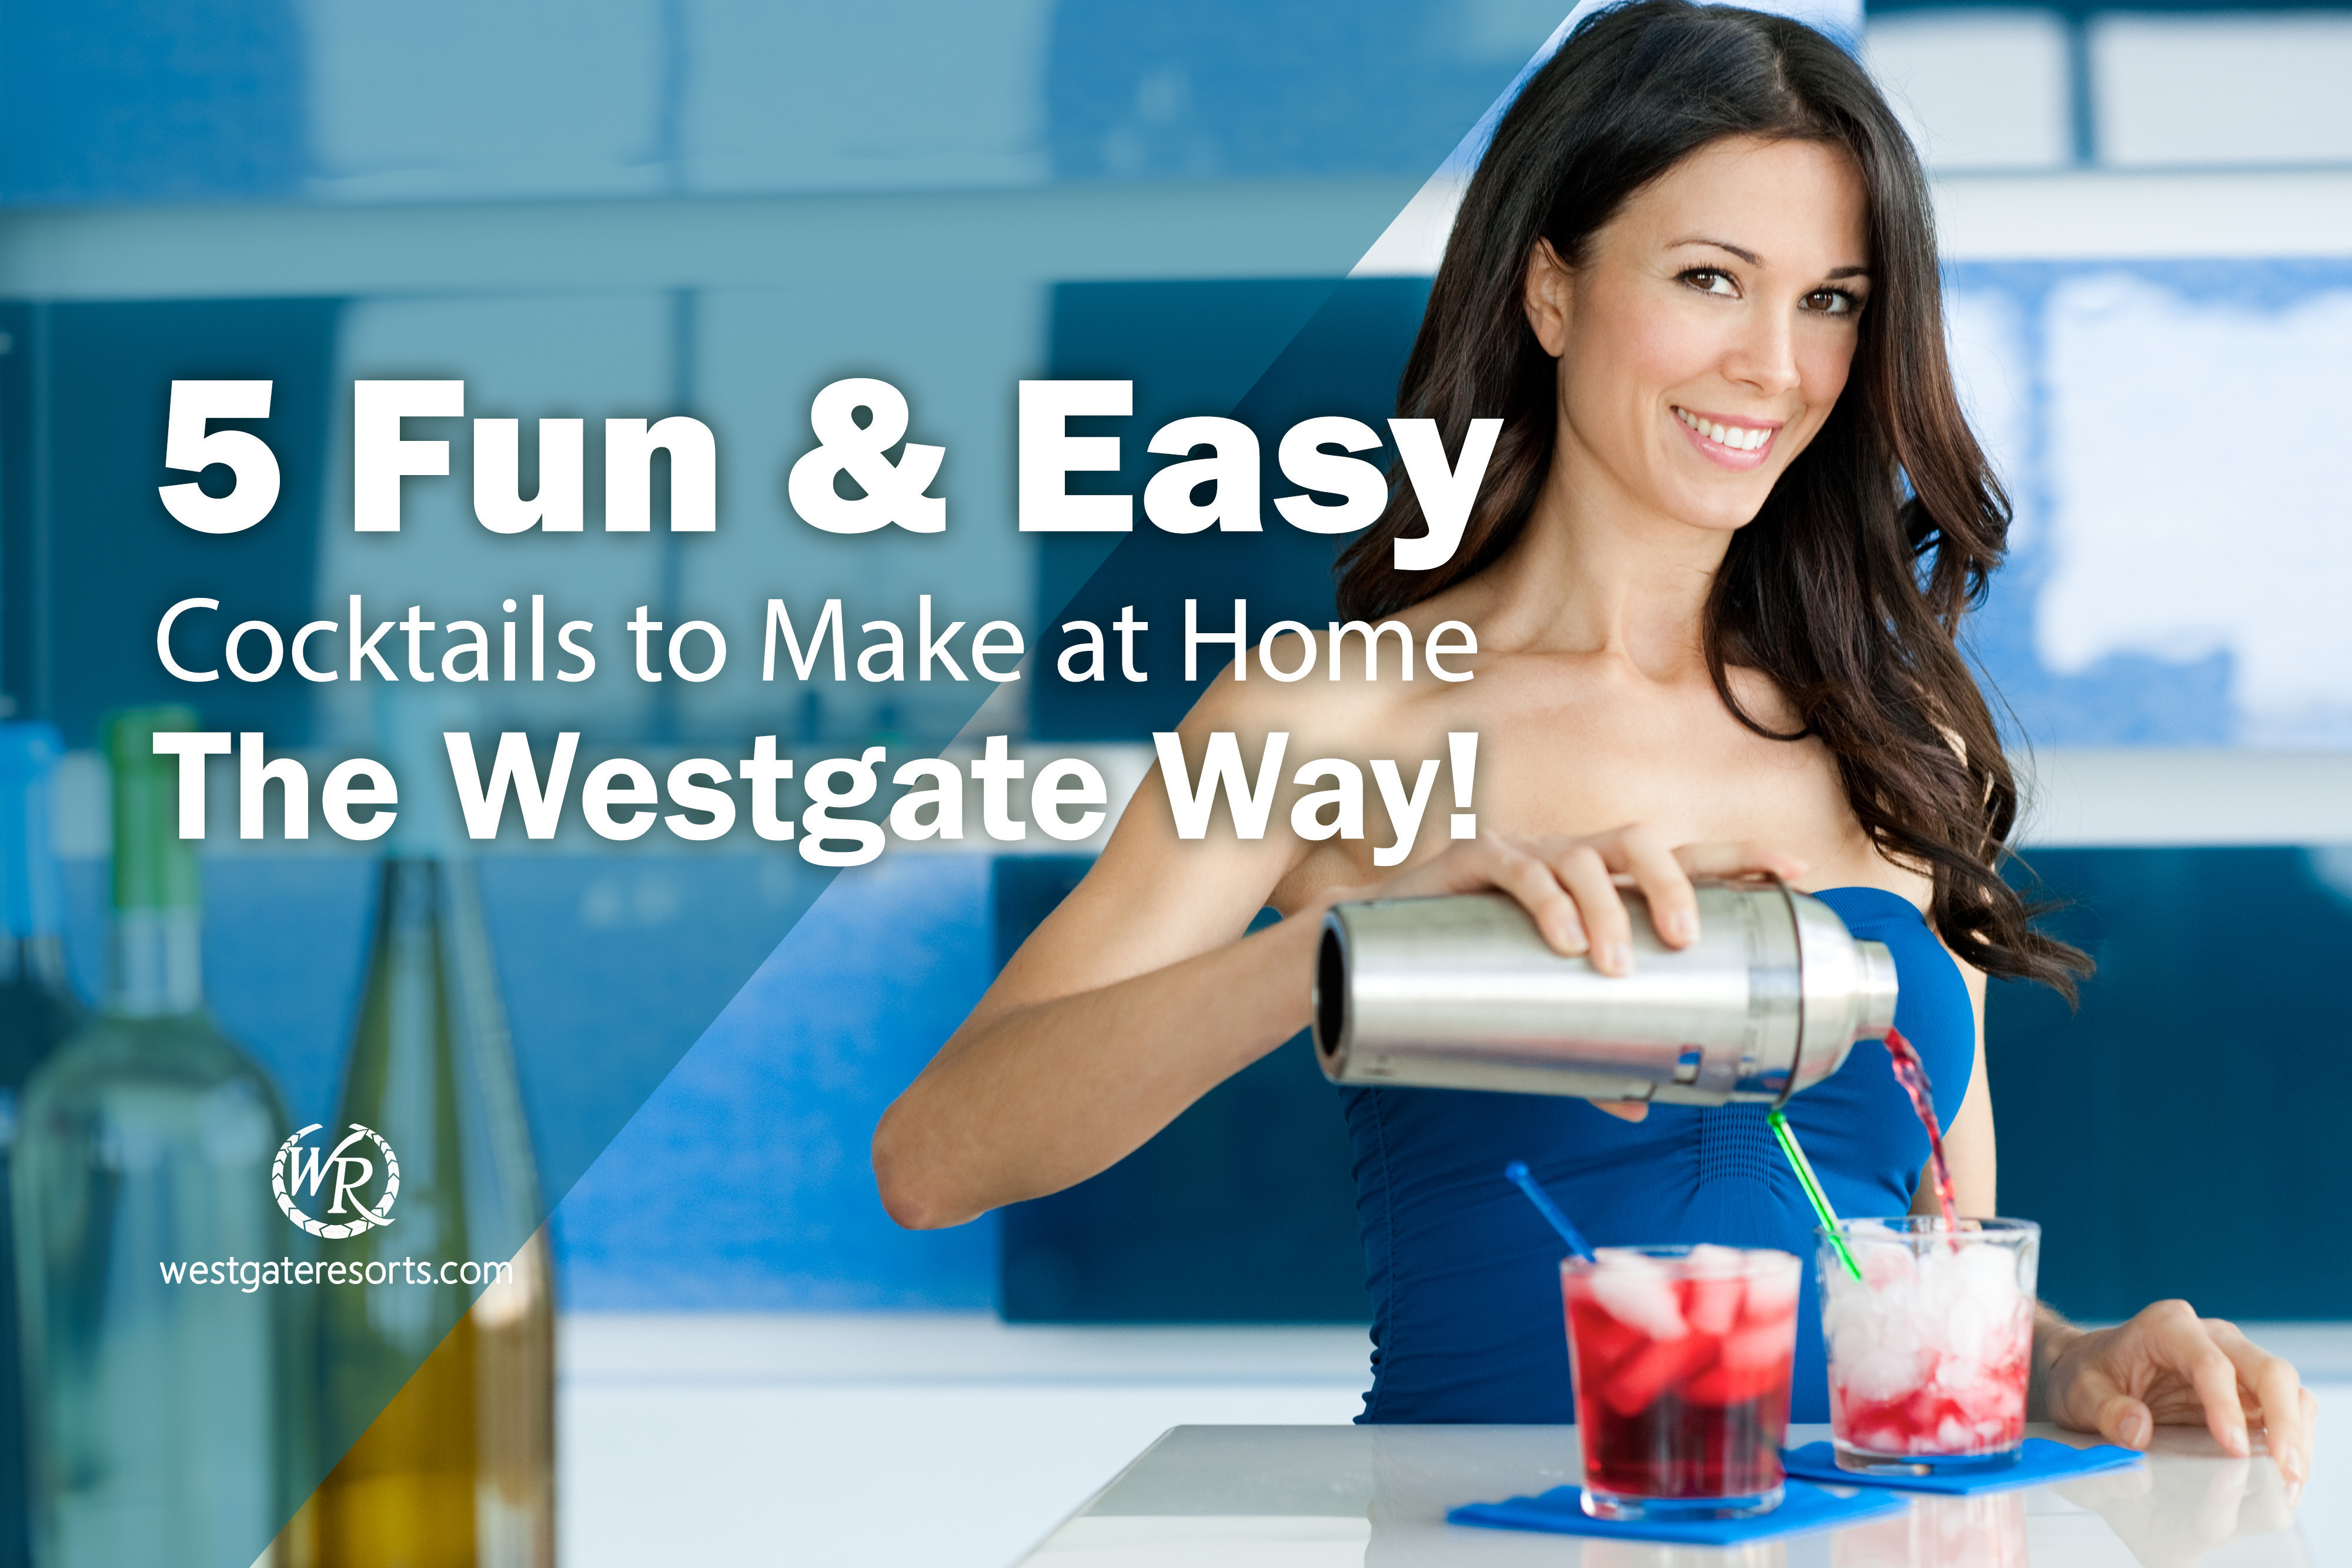 5 Fun & Easy Cocktails to Make at Home, The Westgate Way!